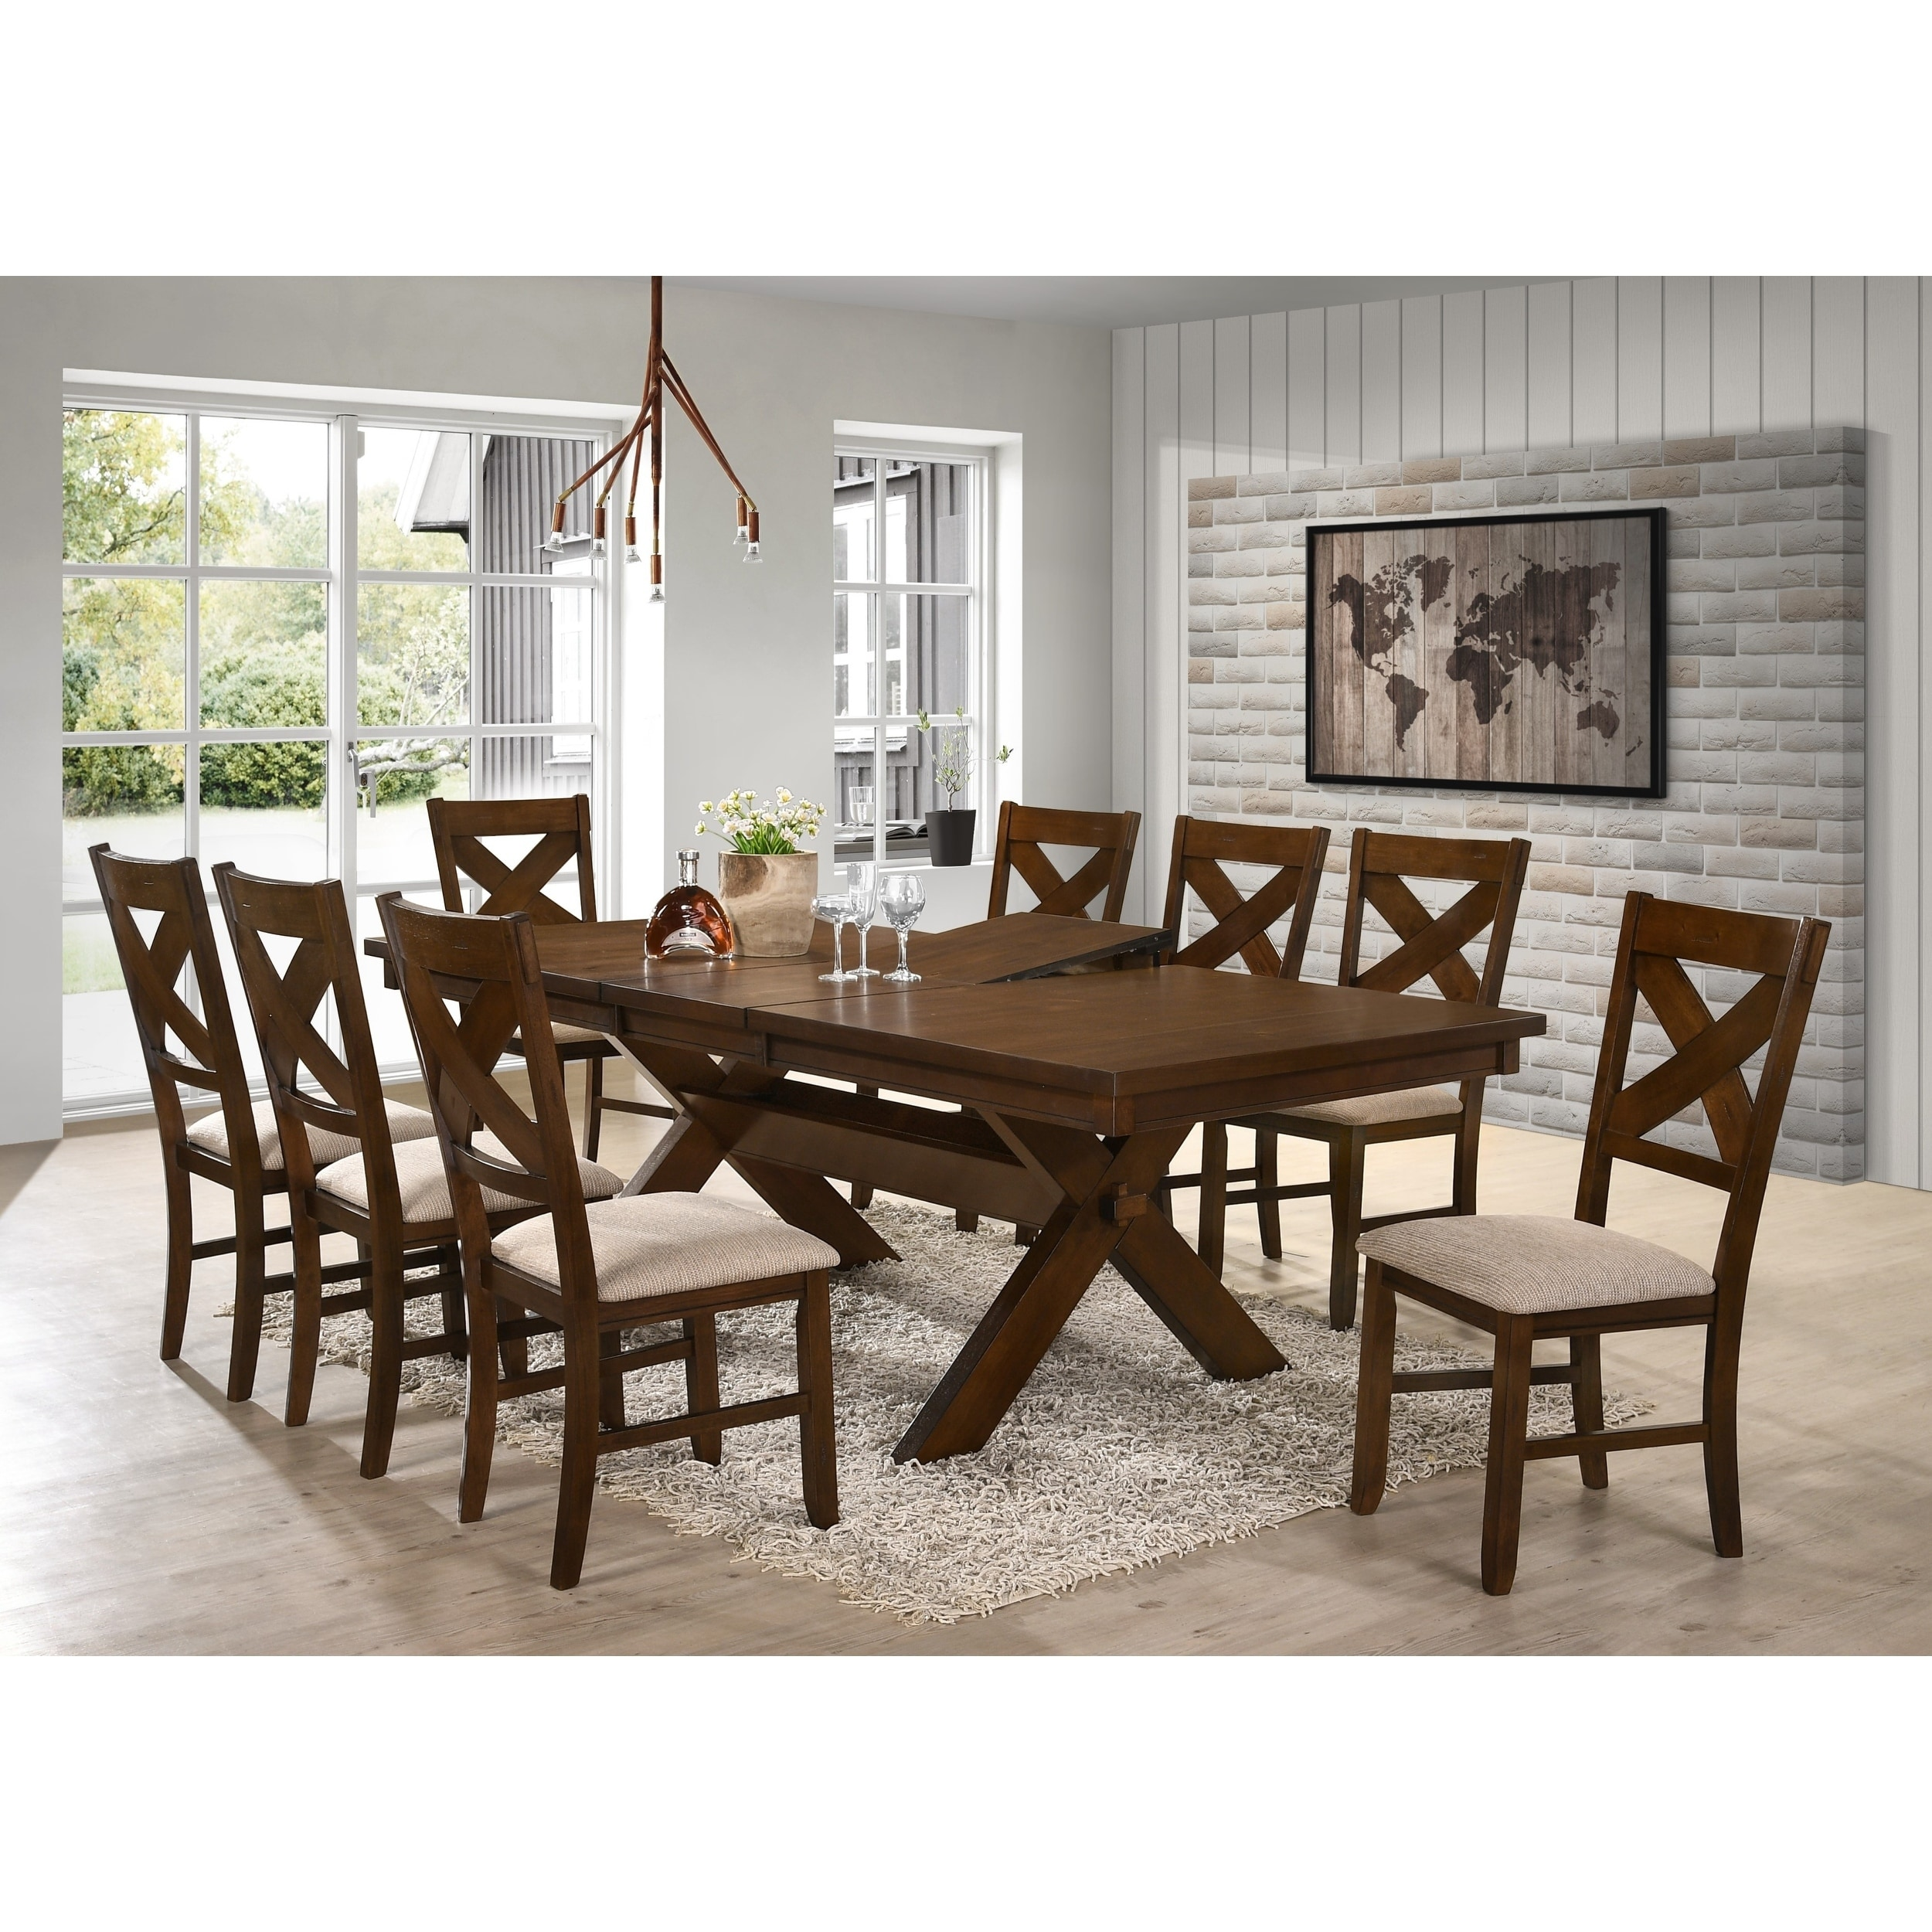 Gentil Shop 9 Piece Solid Wood Dining Set With Table And 8 Chairs   Free Shipping  Today   Overstock   11691458